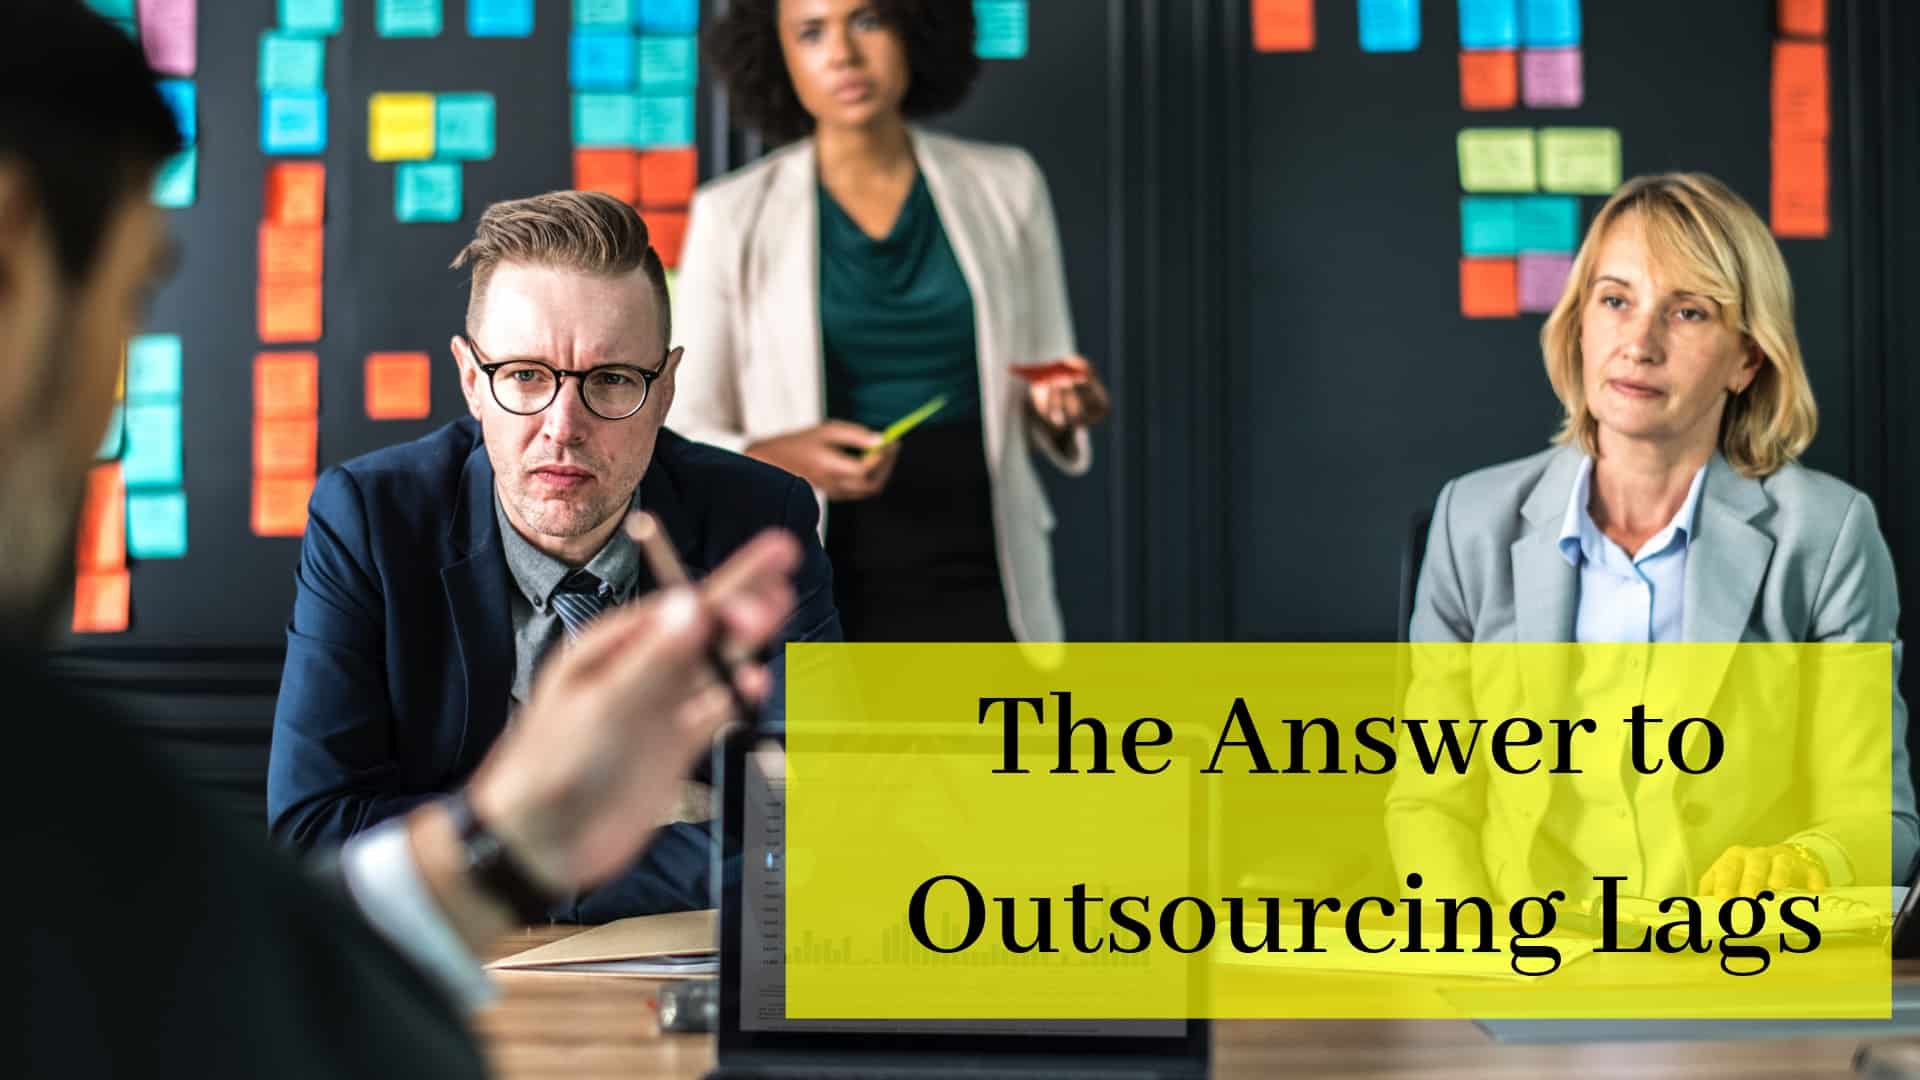 Software development outsourcing lags and how to overcome them